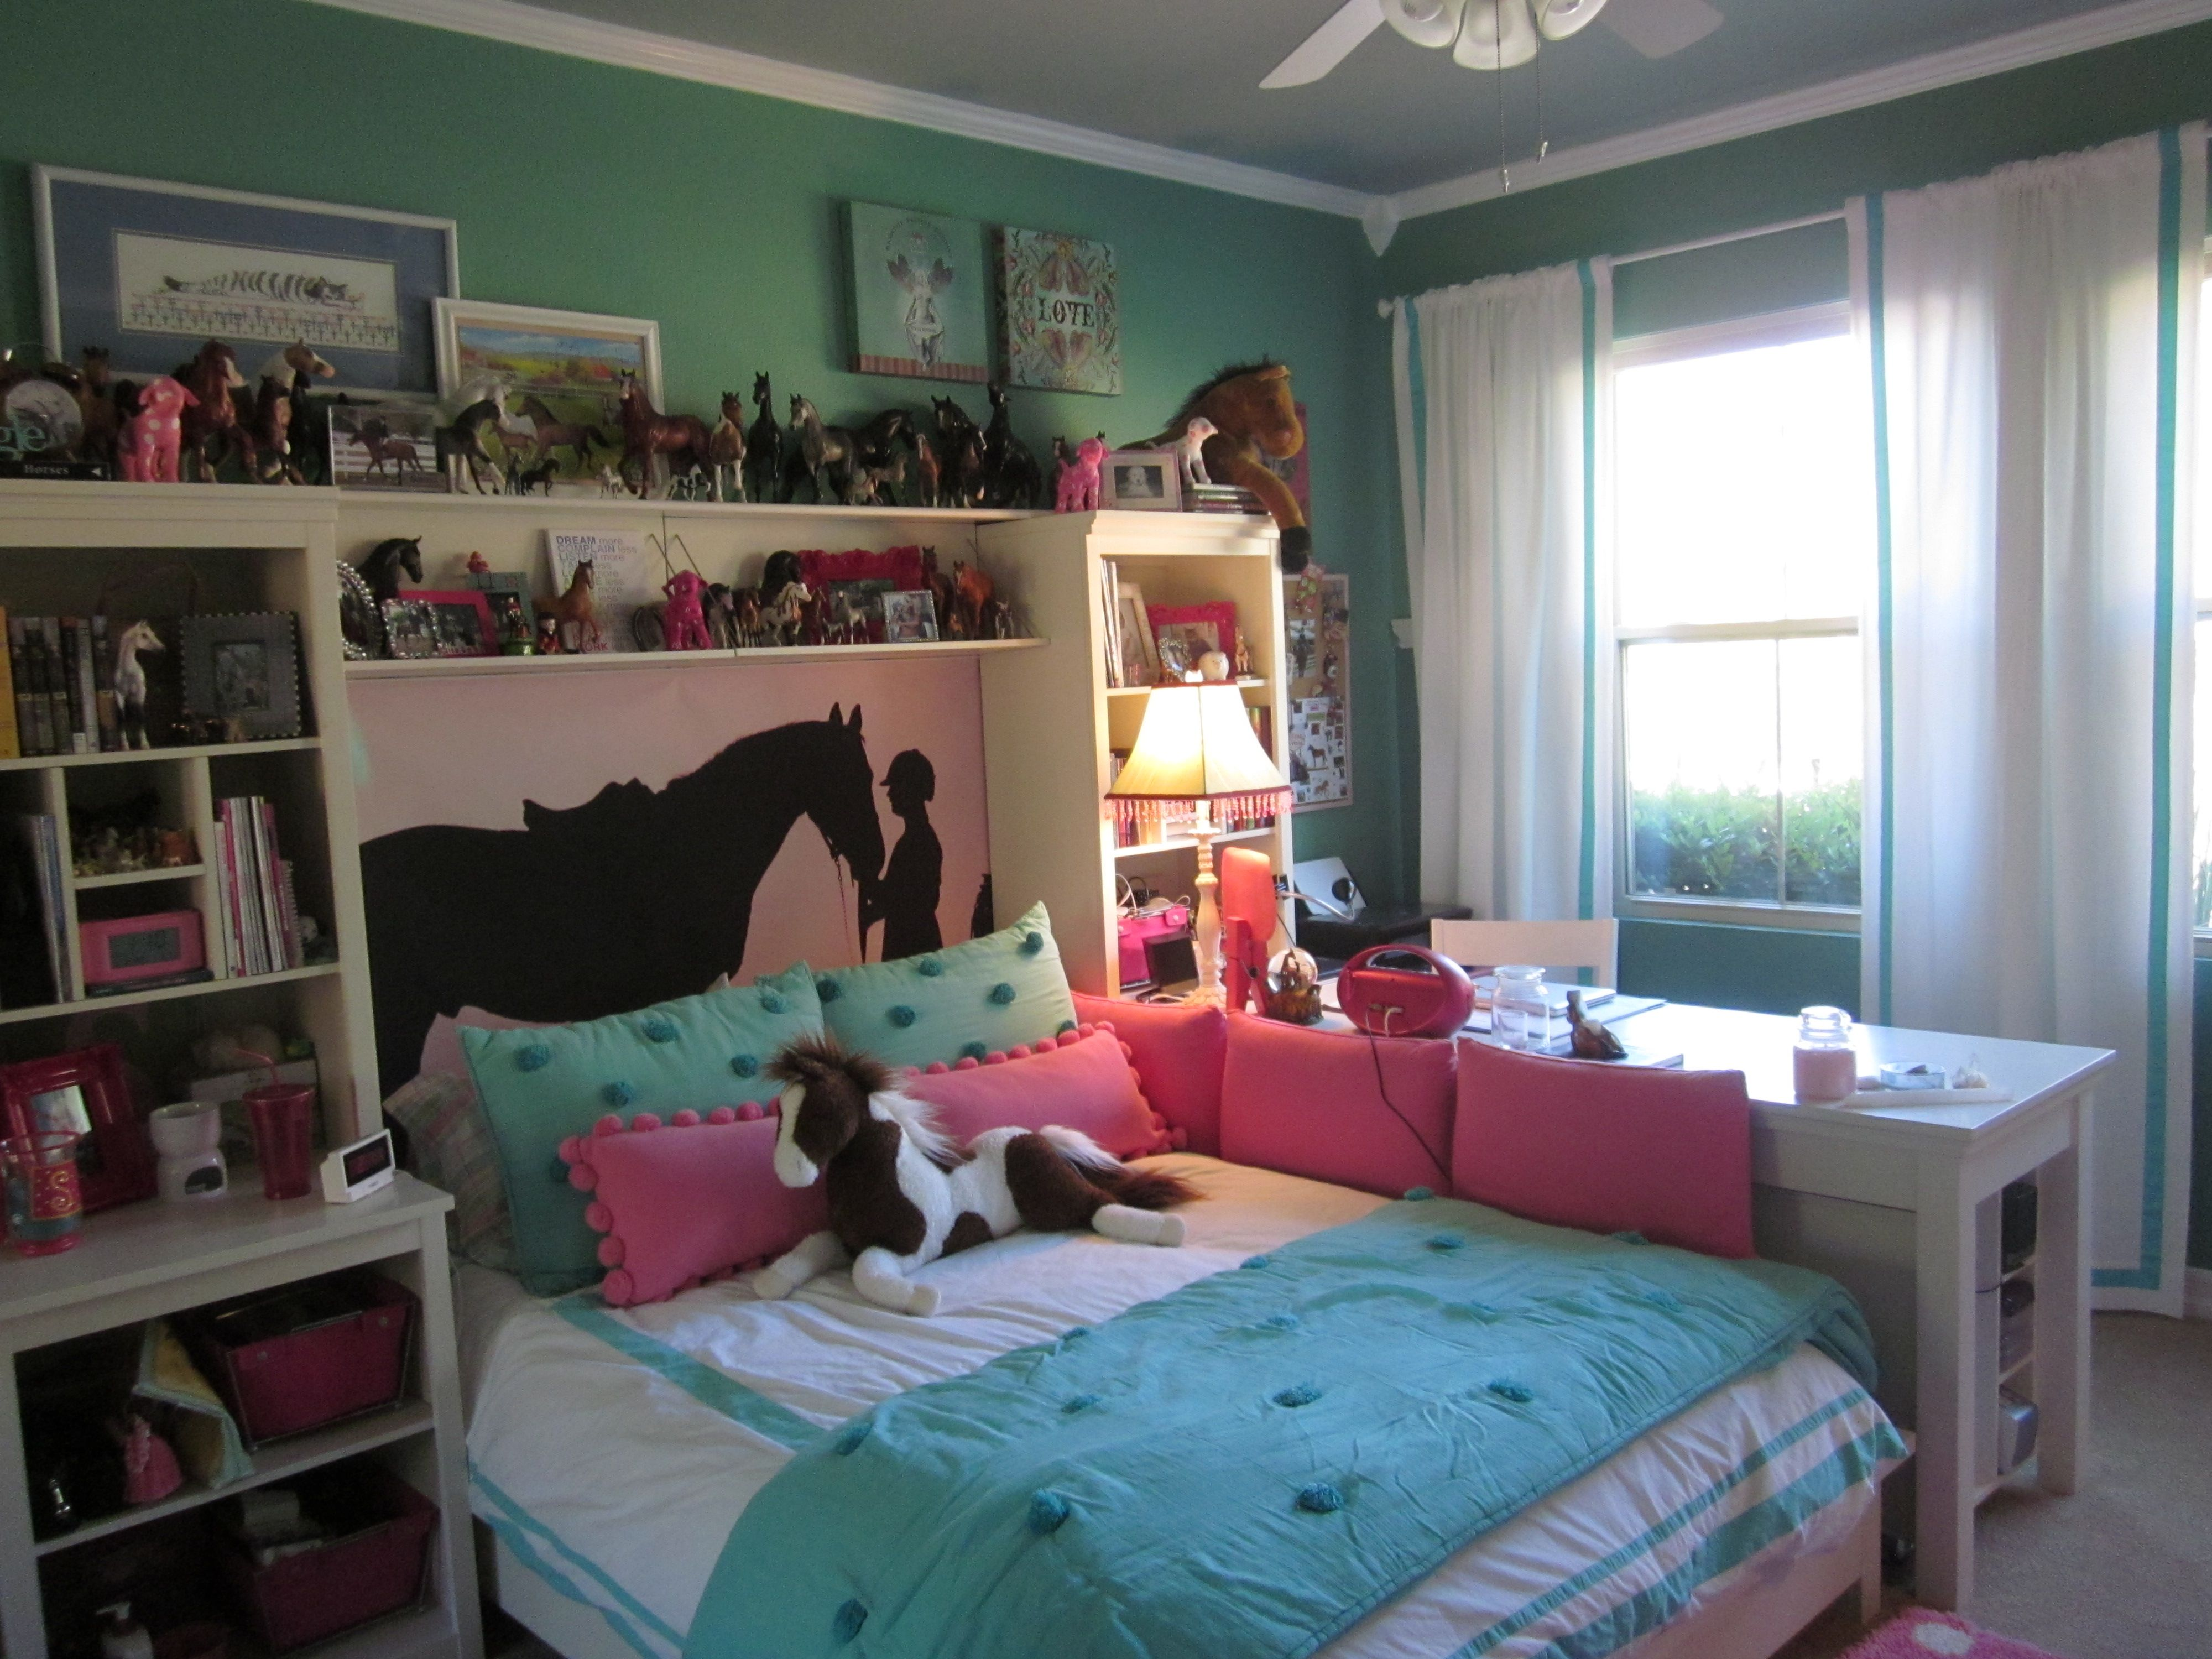 Pin By Str On Ideas Bedroom Themes Horse Bedroom Horse Room